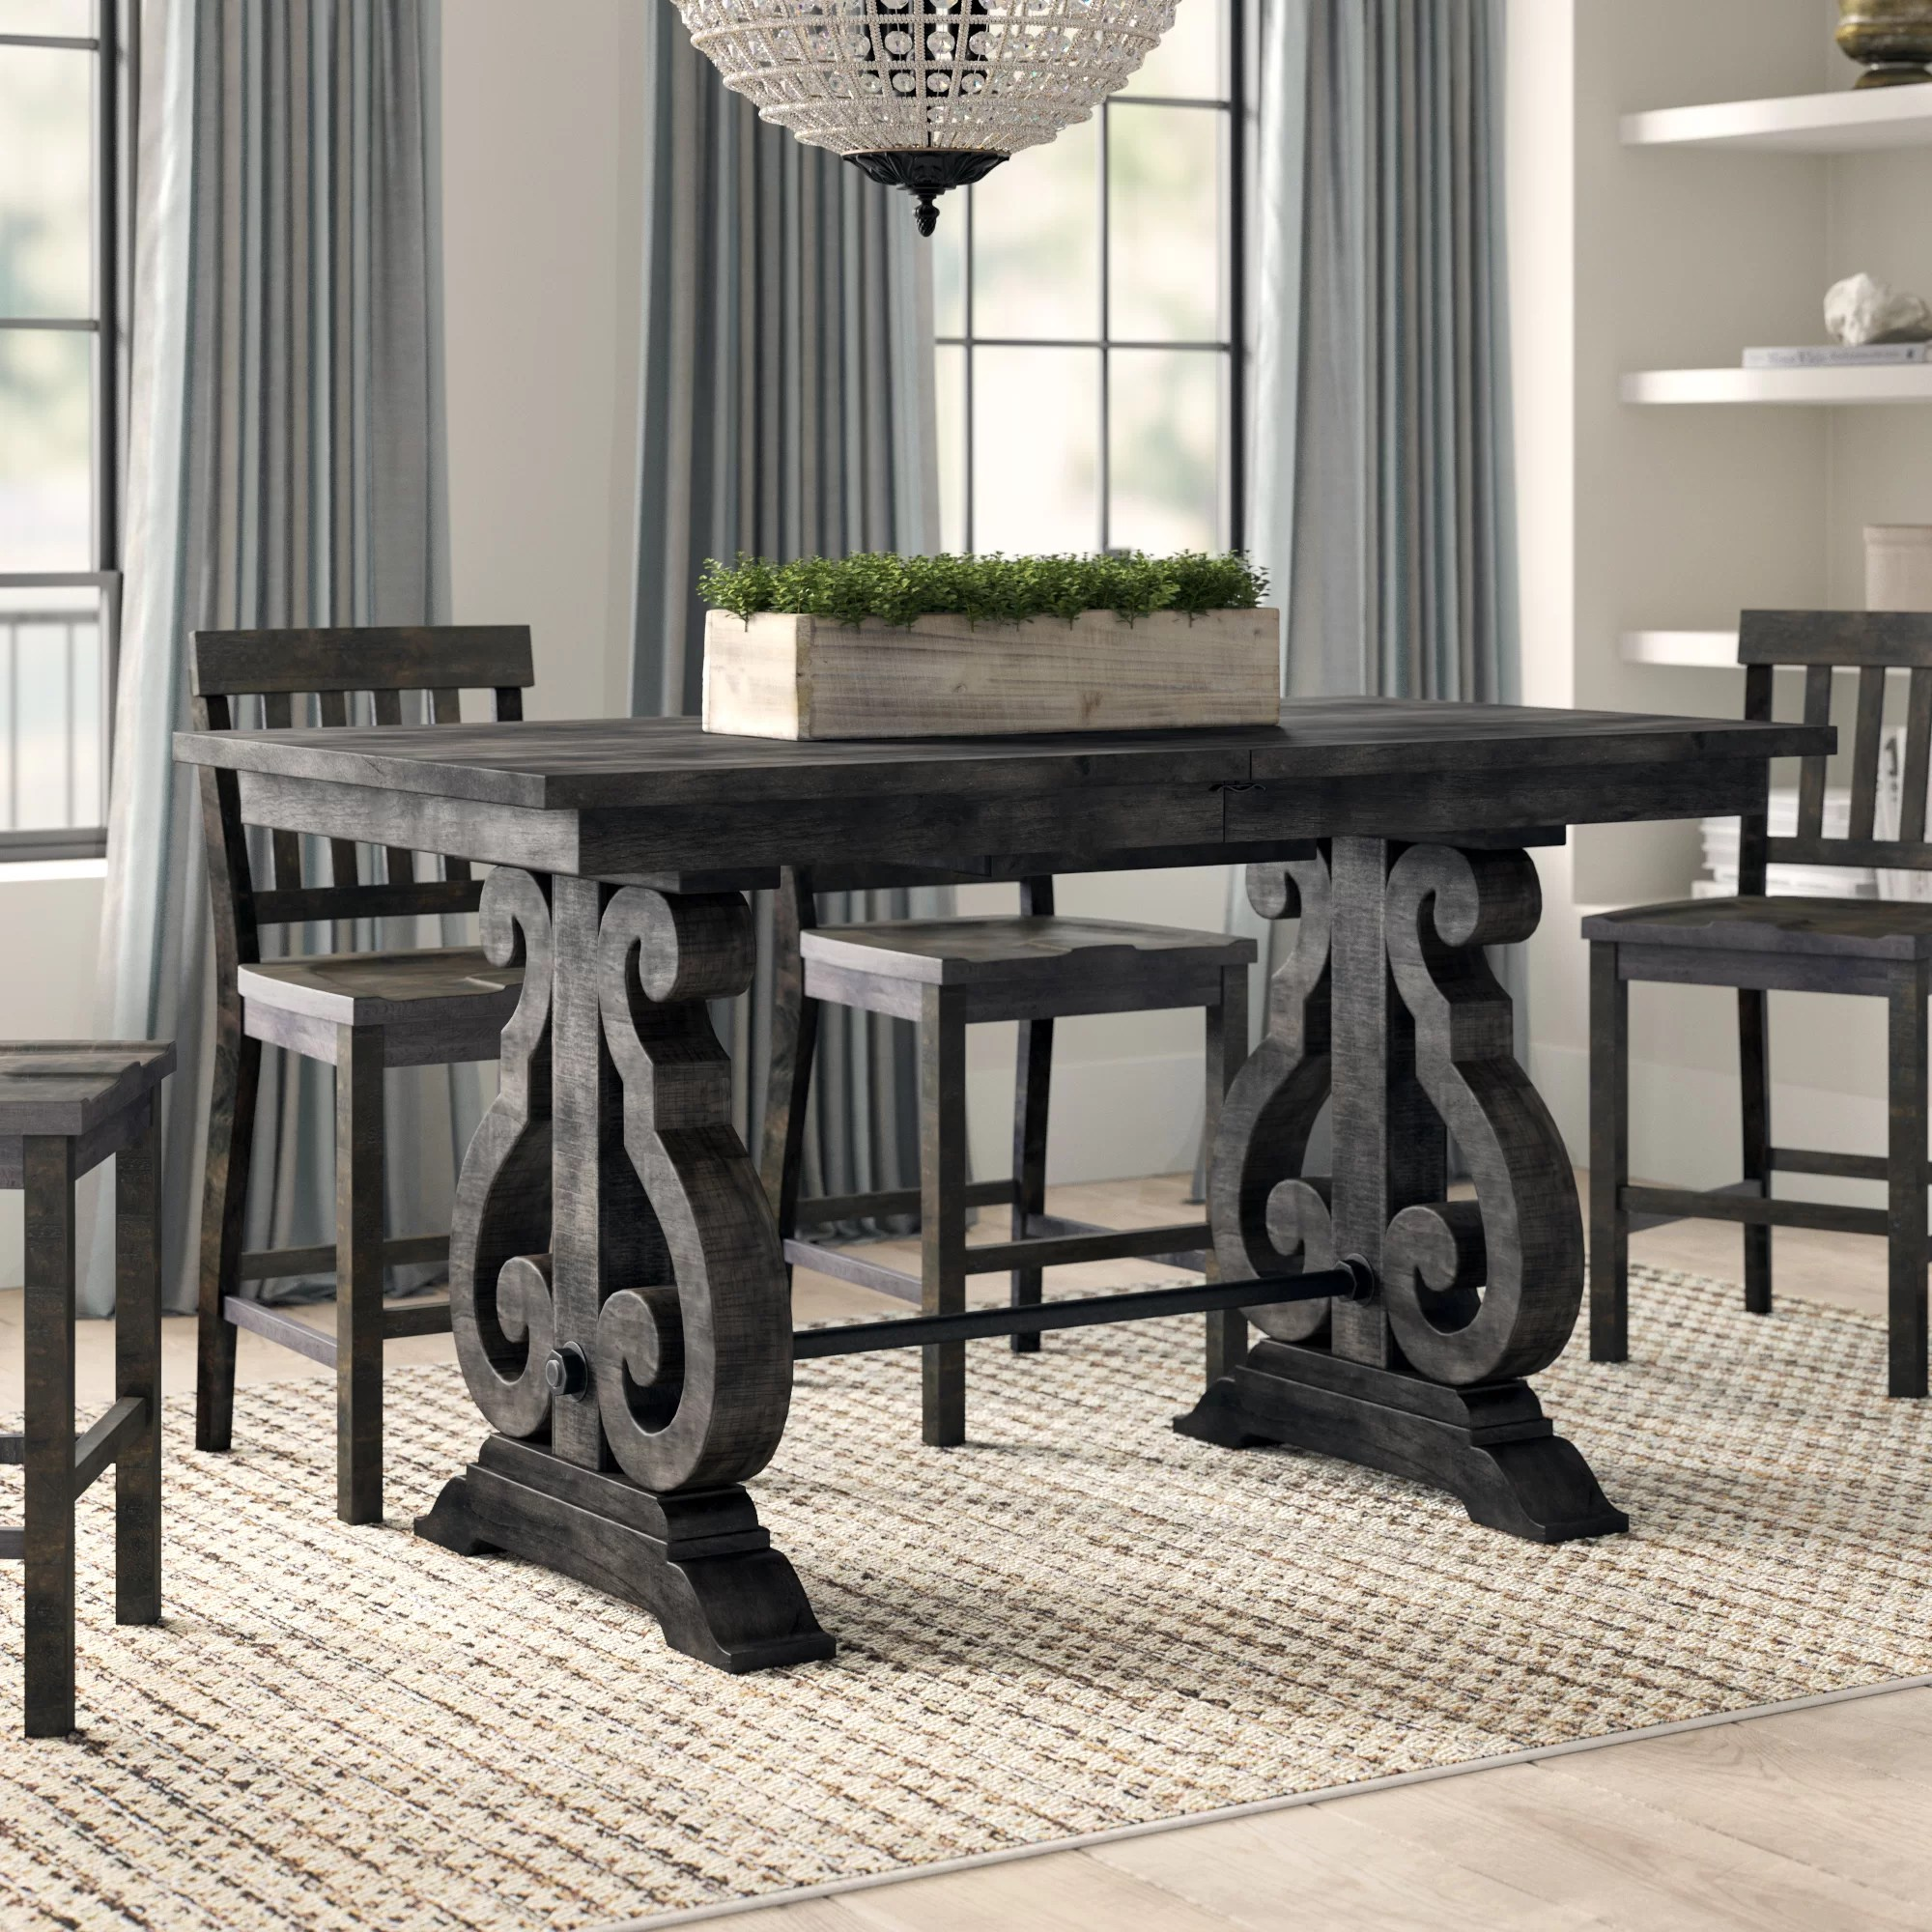 Greyleigh Ellenton Counter Height Extendable Pine Solid Wood Dining Table Reviews Wayfair